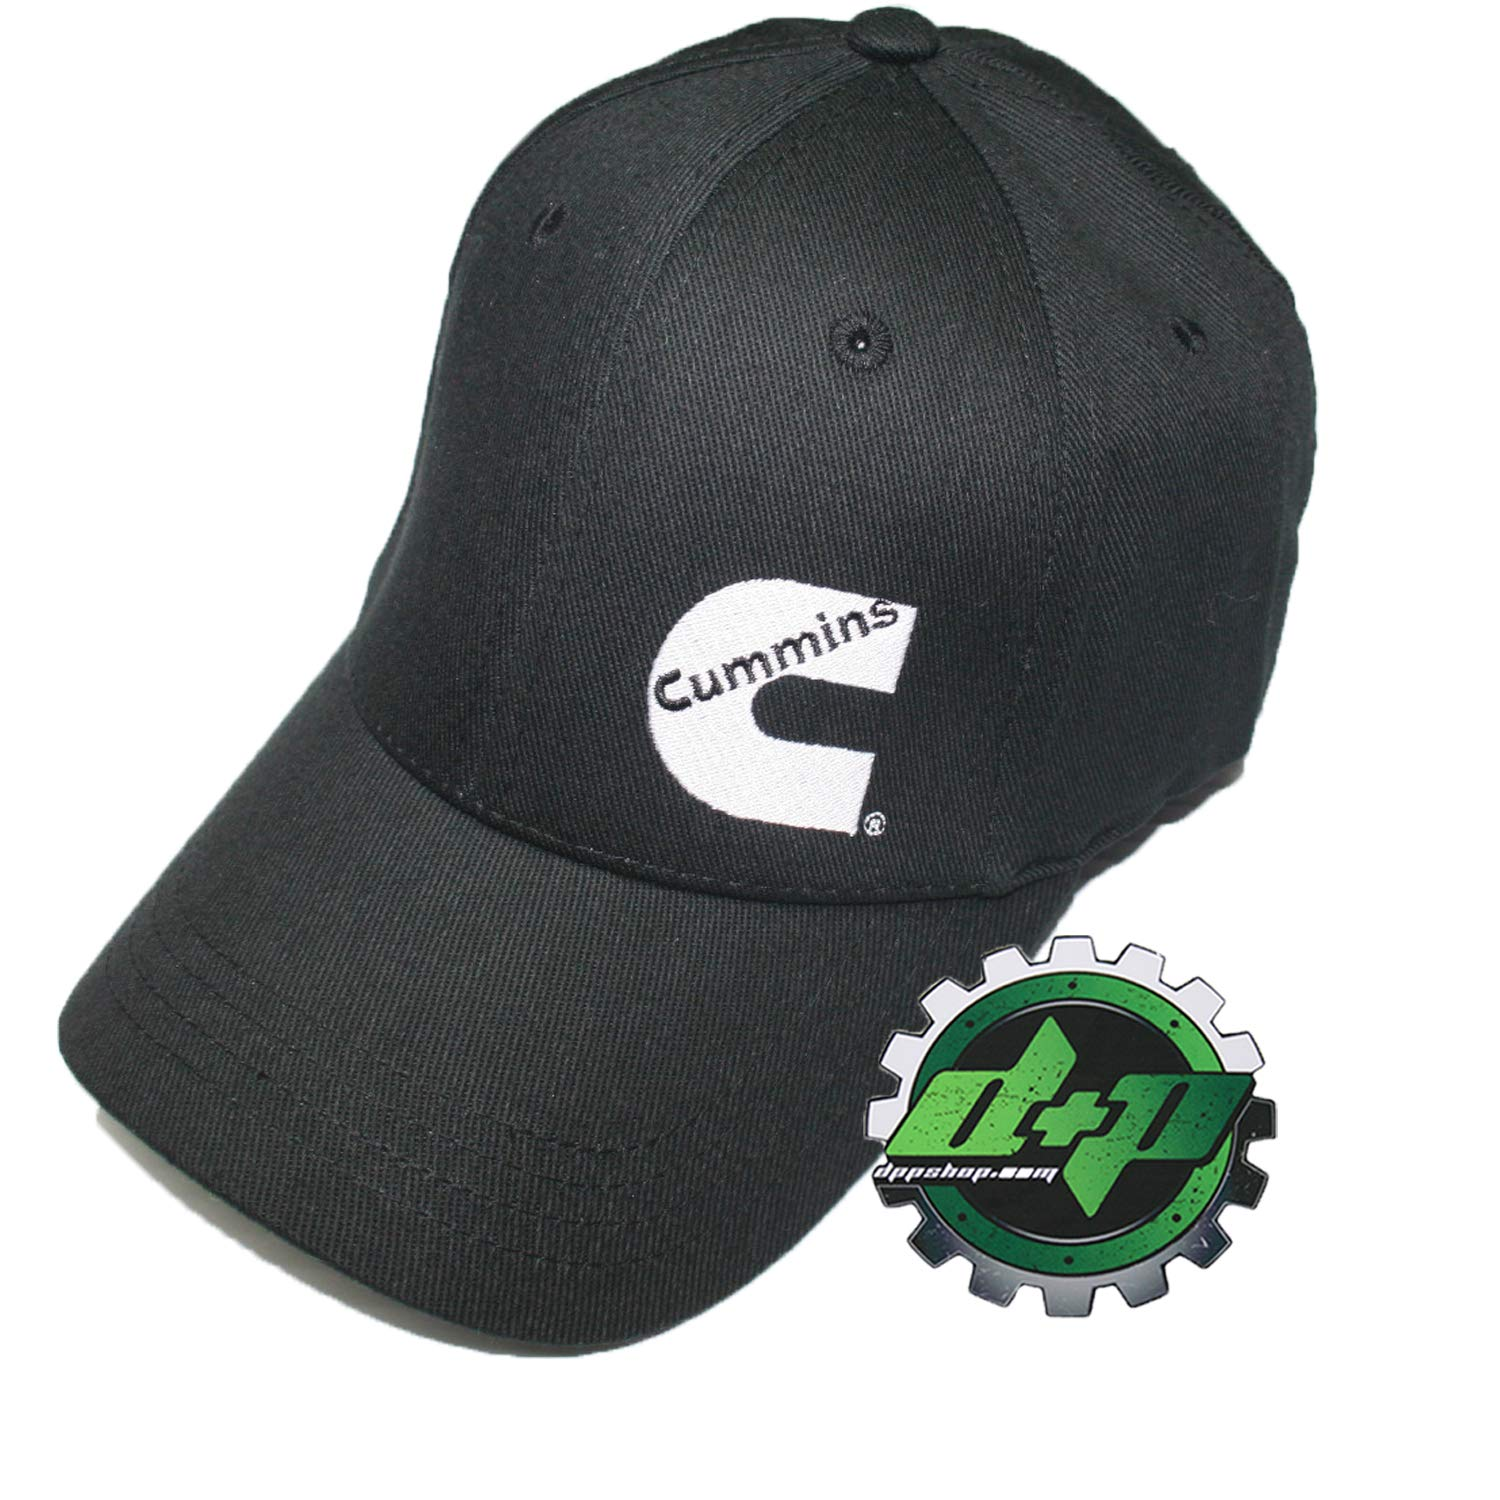 6115160f63a Amazon.com  Diesel Power Plus Cummins Flex Fitted Black Ball Cap fit Hat  Dodge Stretch  Sports   Outdoors